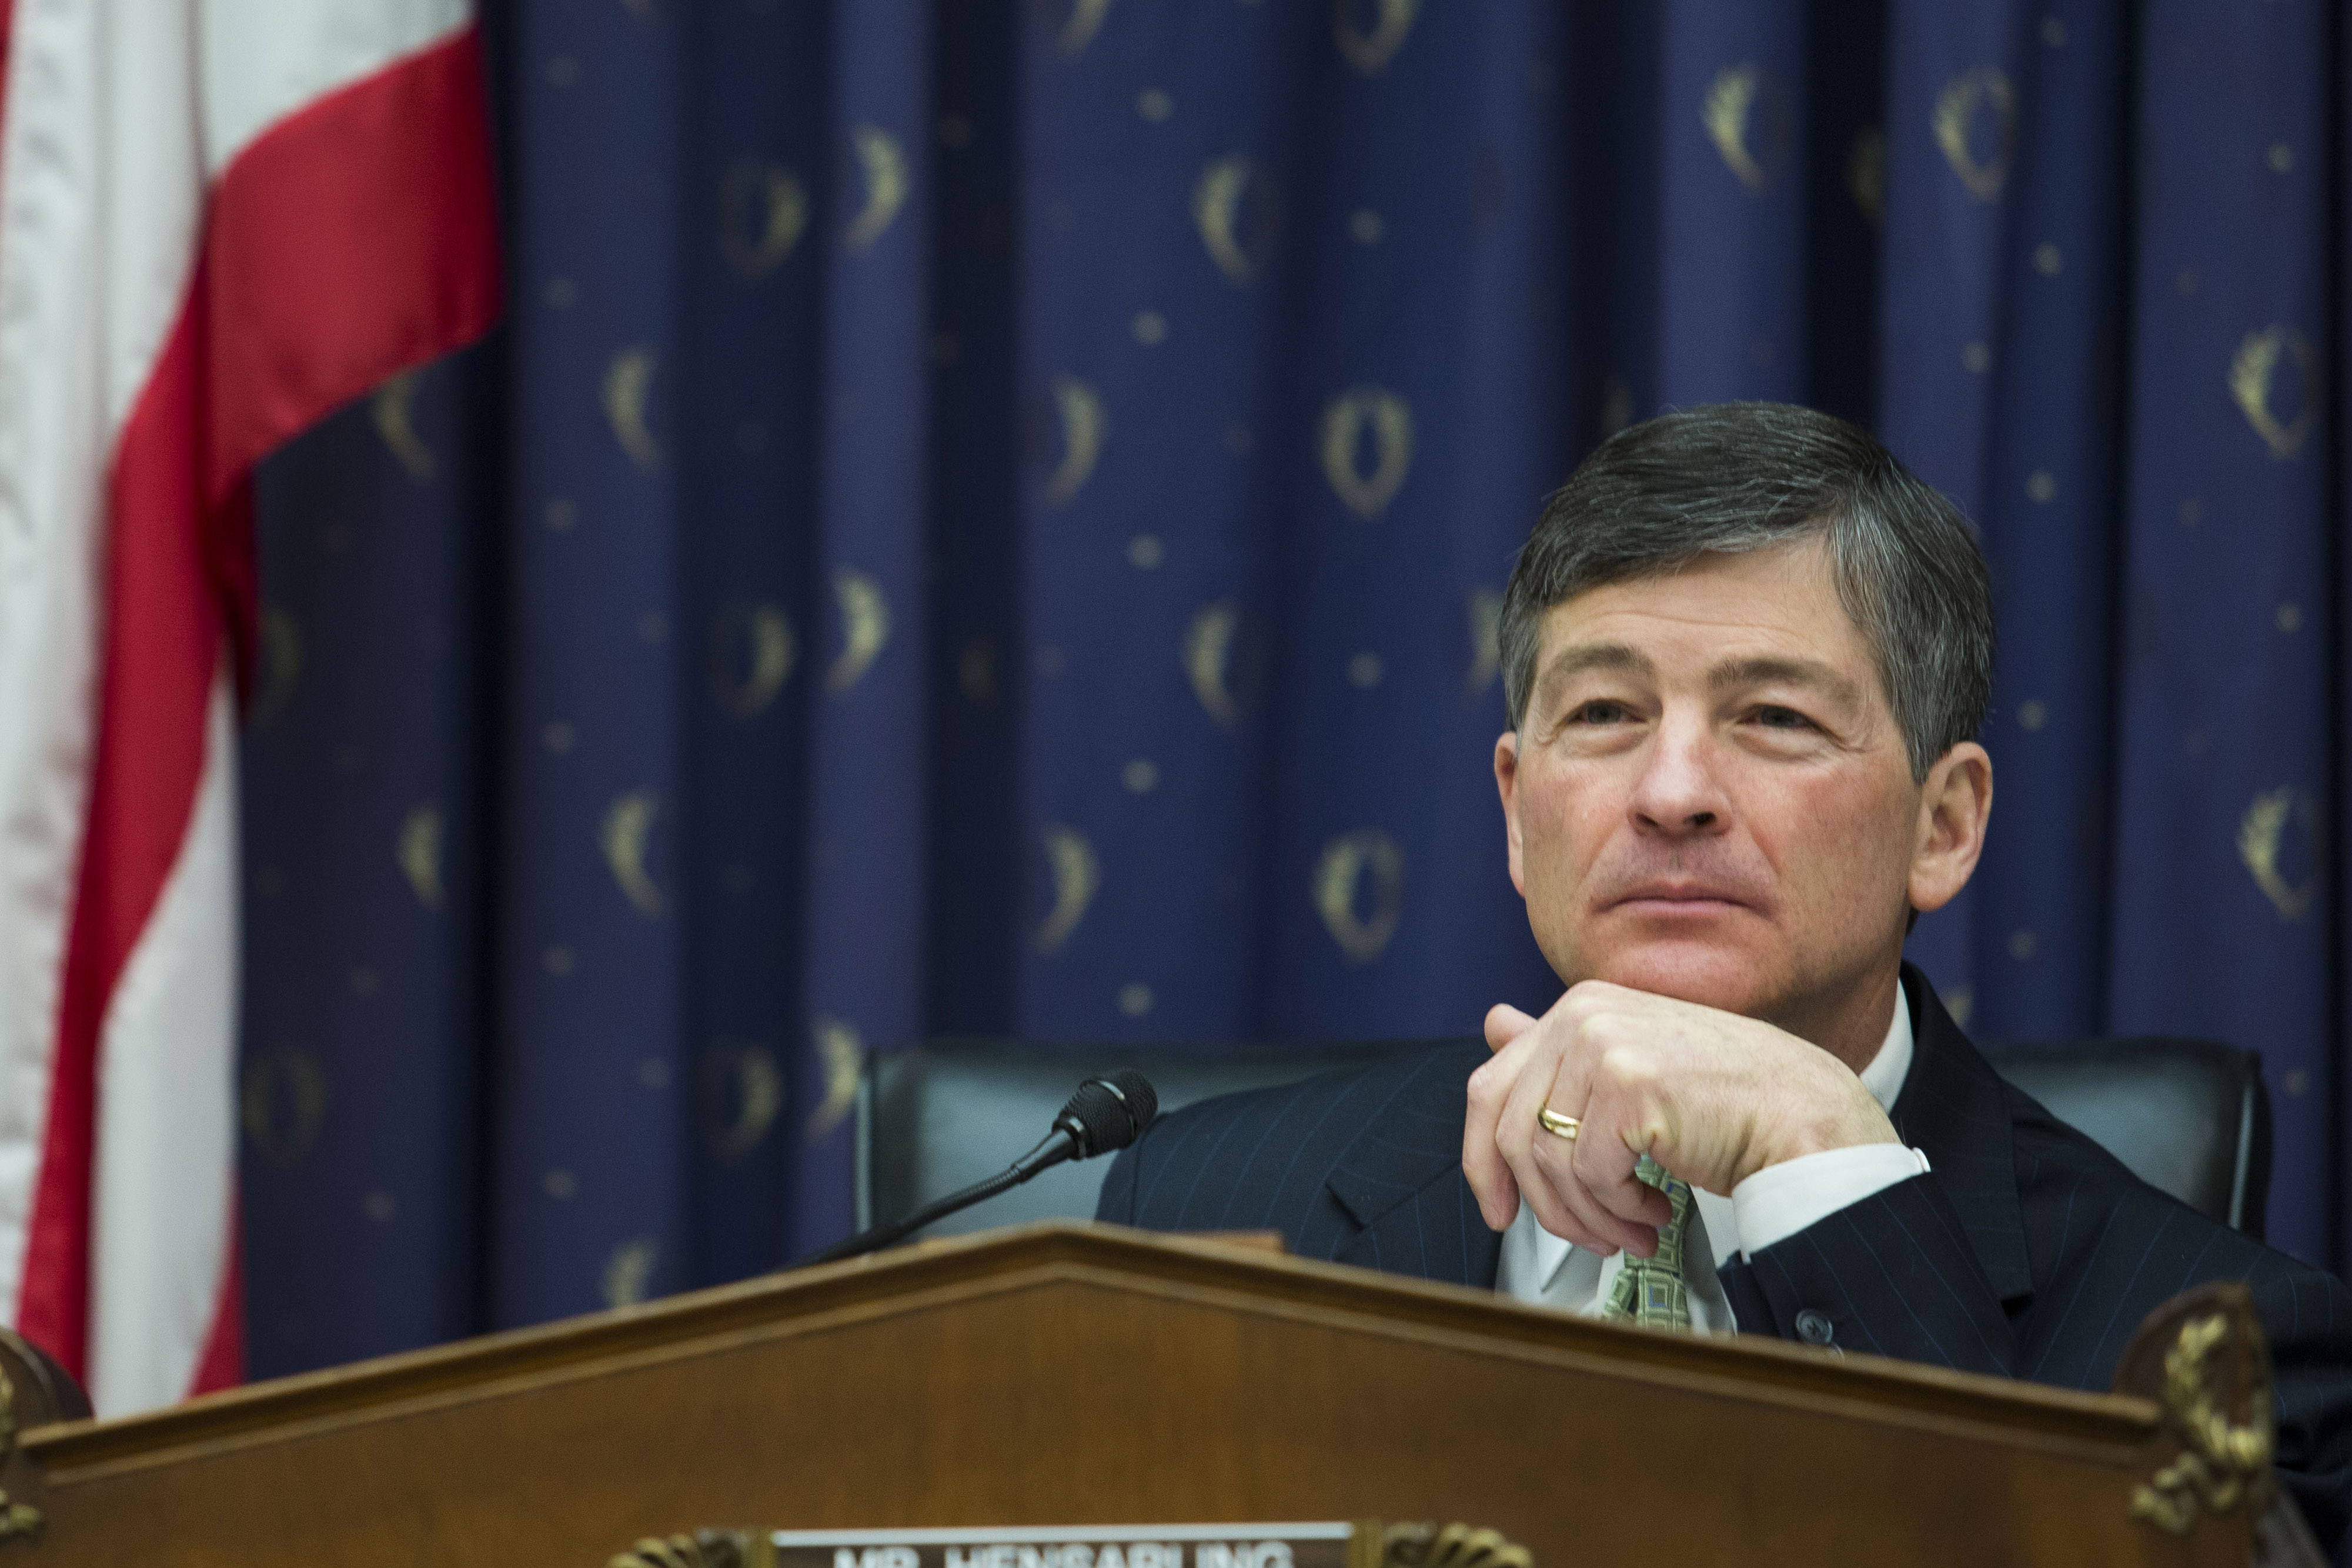 U.S. Representative Jeb Hensarling, chairman of the House Financial Services Committee and a Republican from Texas